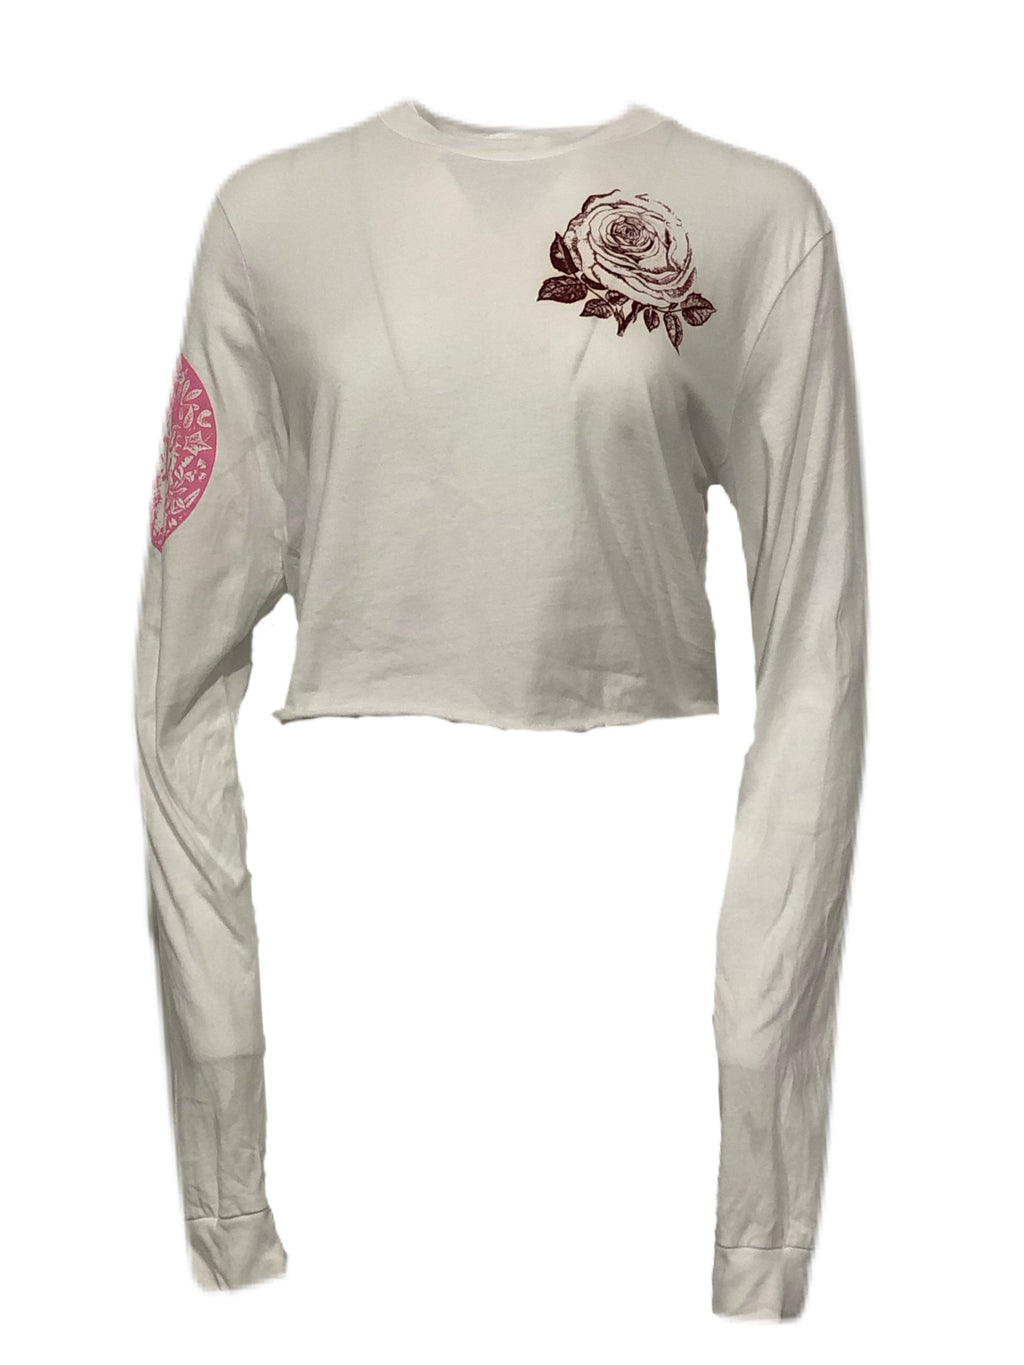 Silk Screen Melange Cropped Long Sleeve T Shirt - Spring 2021 - Libertine